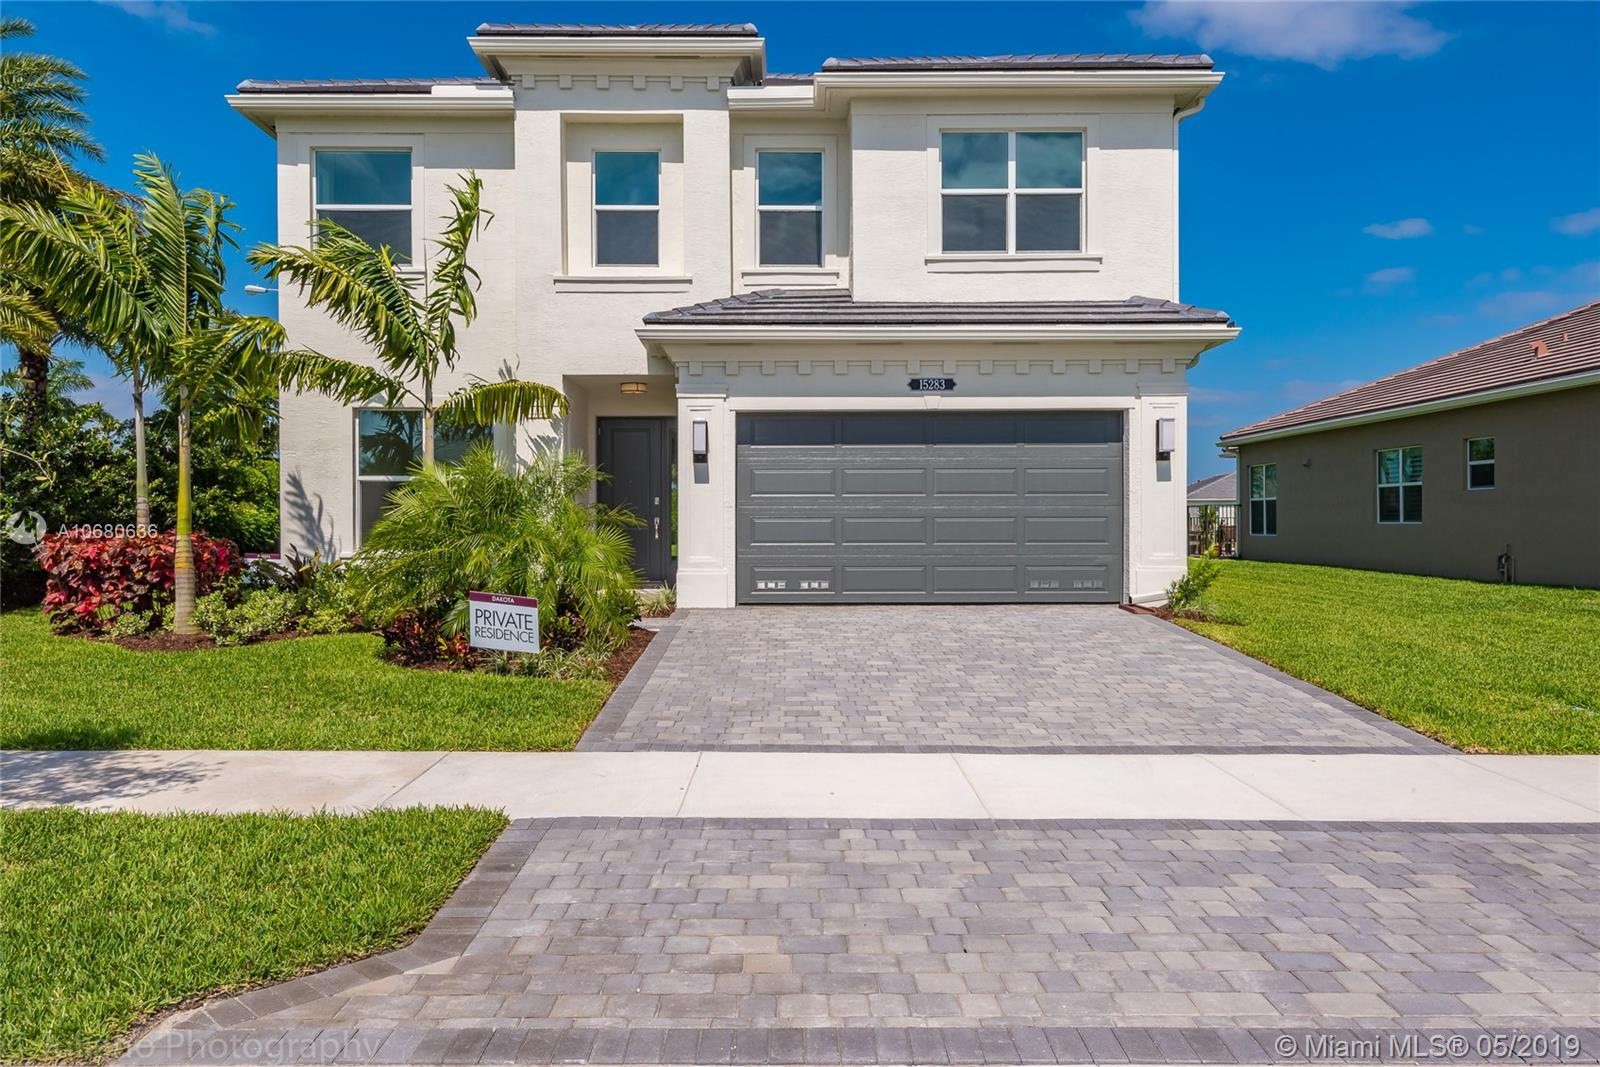 15283 Seaglass Terrace Ln, Delray Beach, FL 33446 - Delray Beach, FL real estate listing